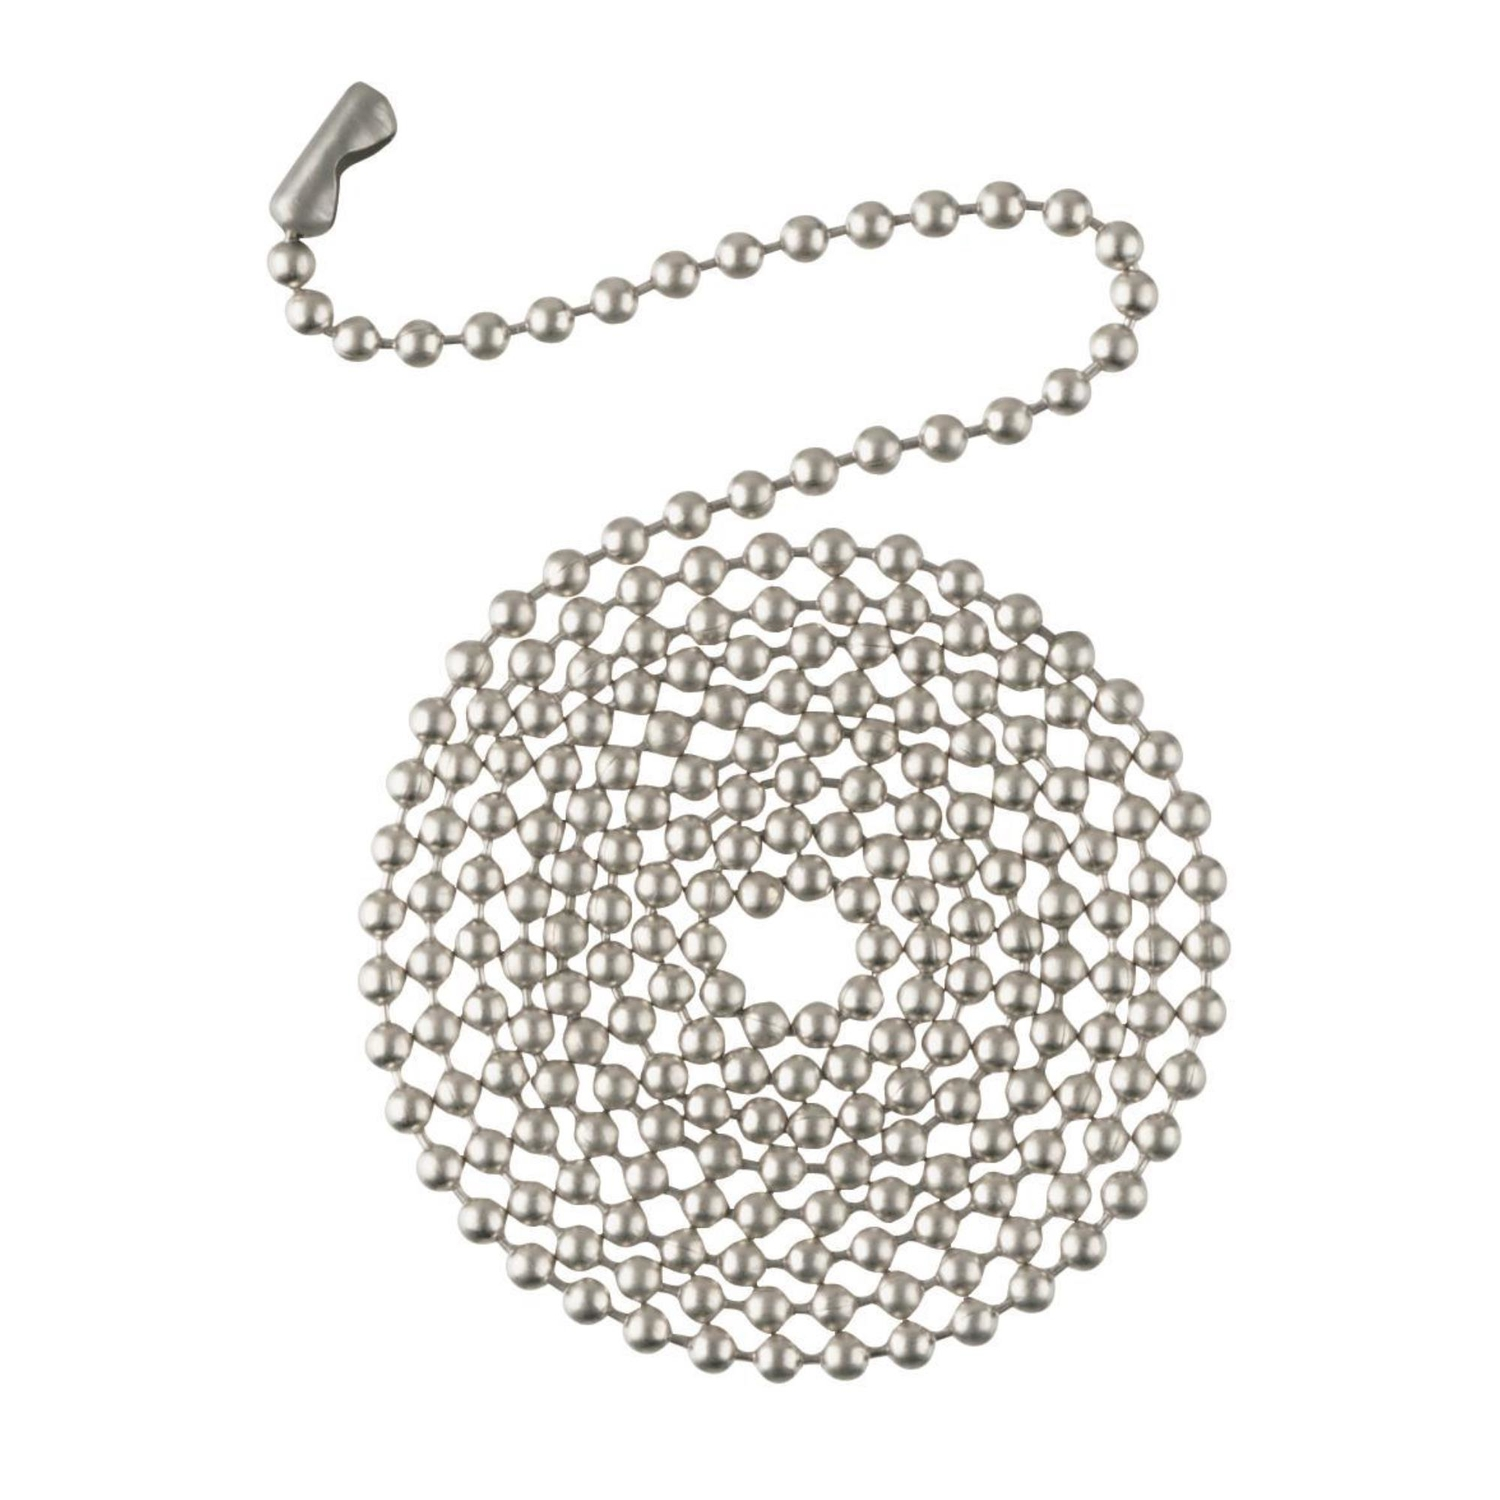 Westinghouse  Beaded Chain  Brushed Nickel  Nickel